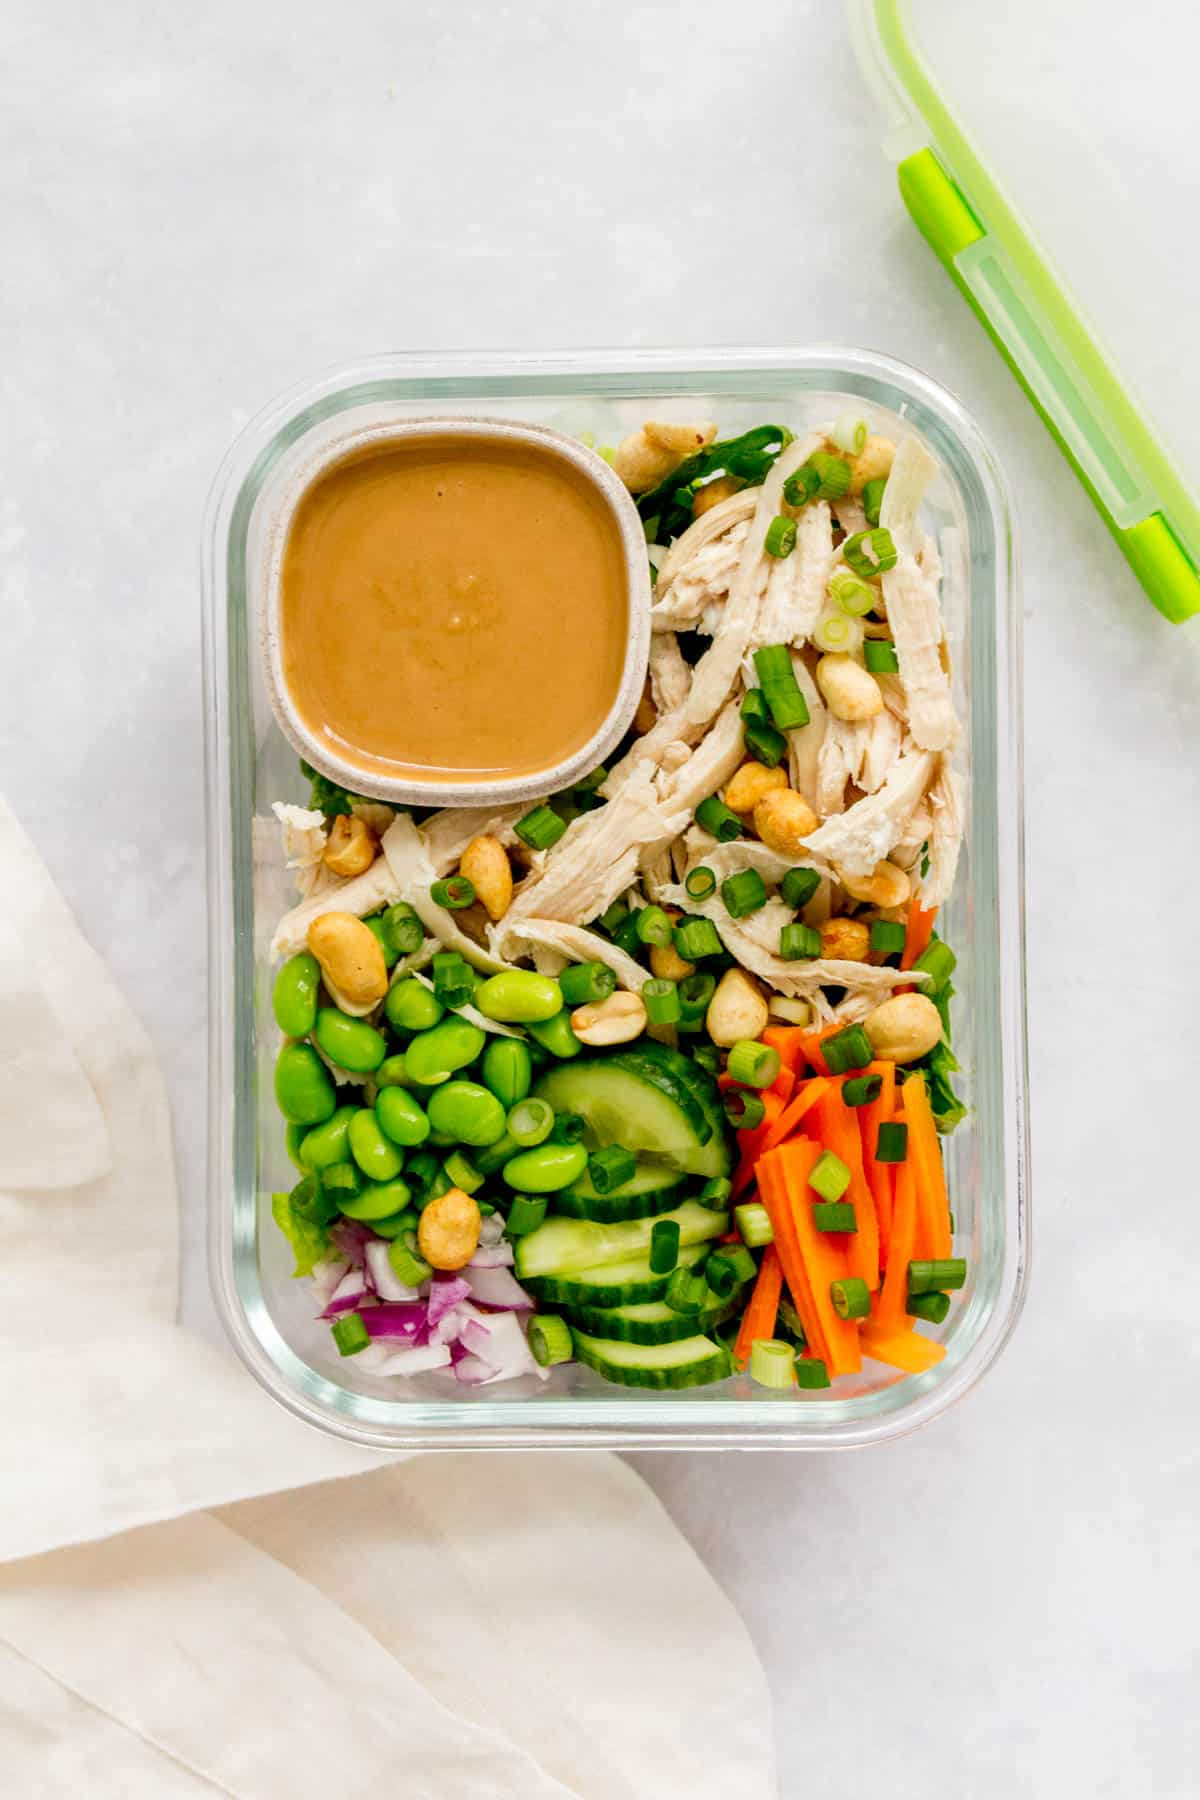 Meal prep container of thai chopped salad with peanut sauce.